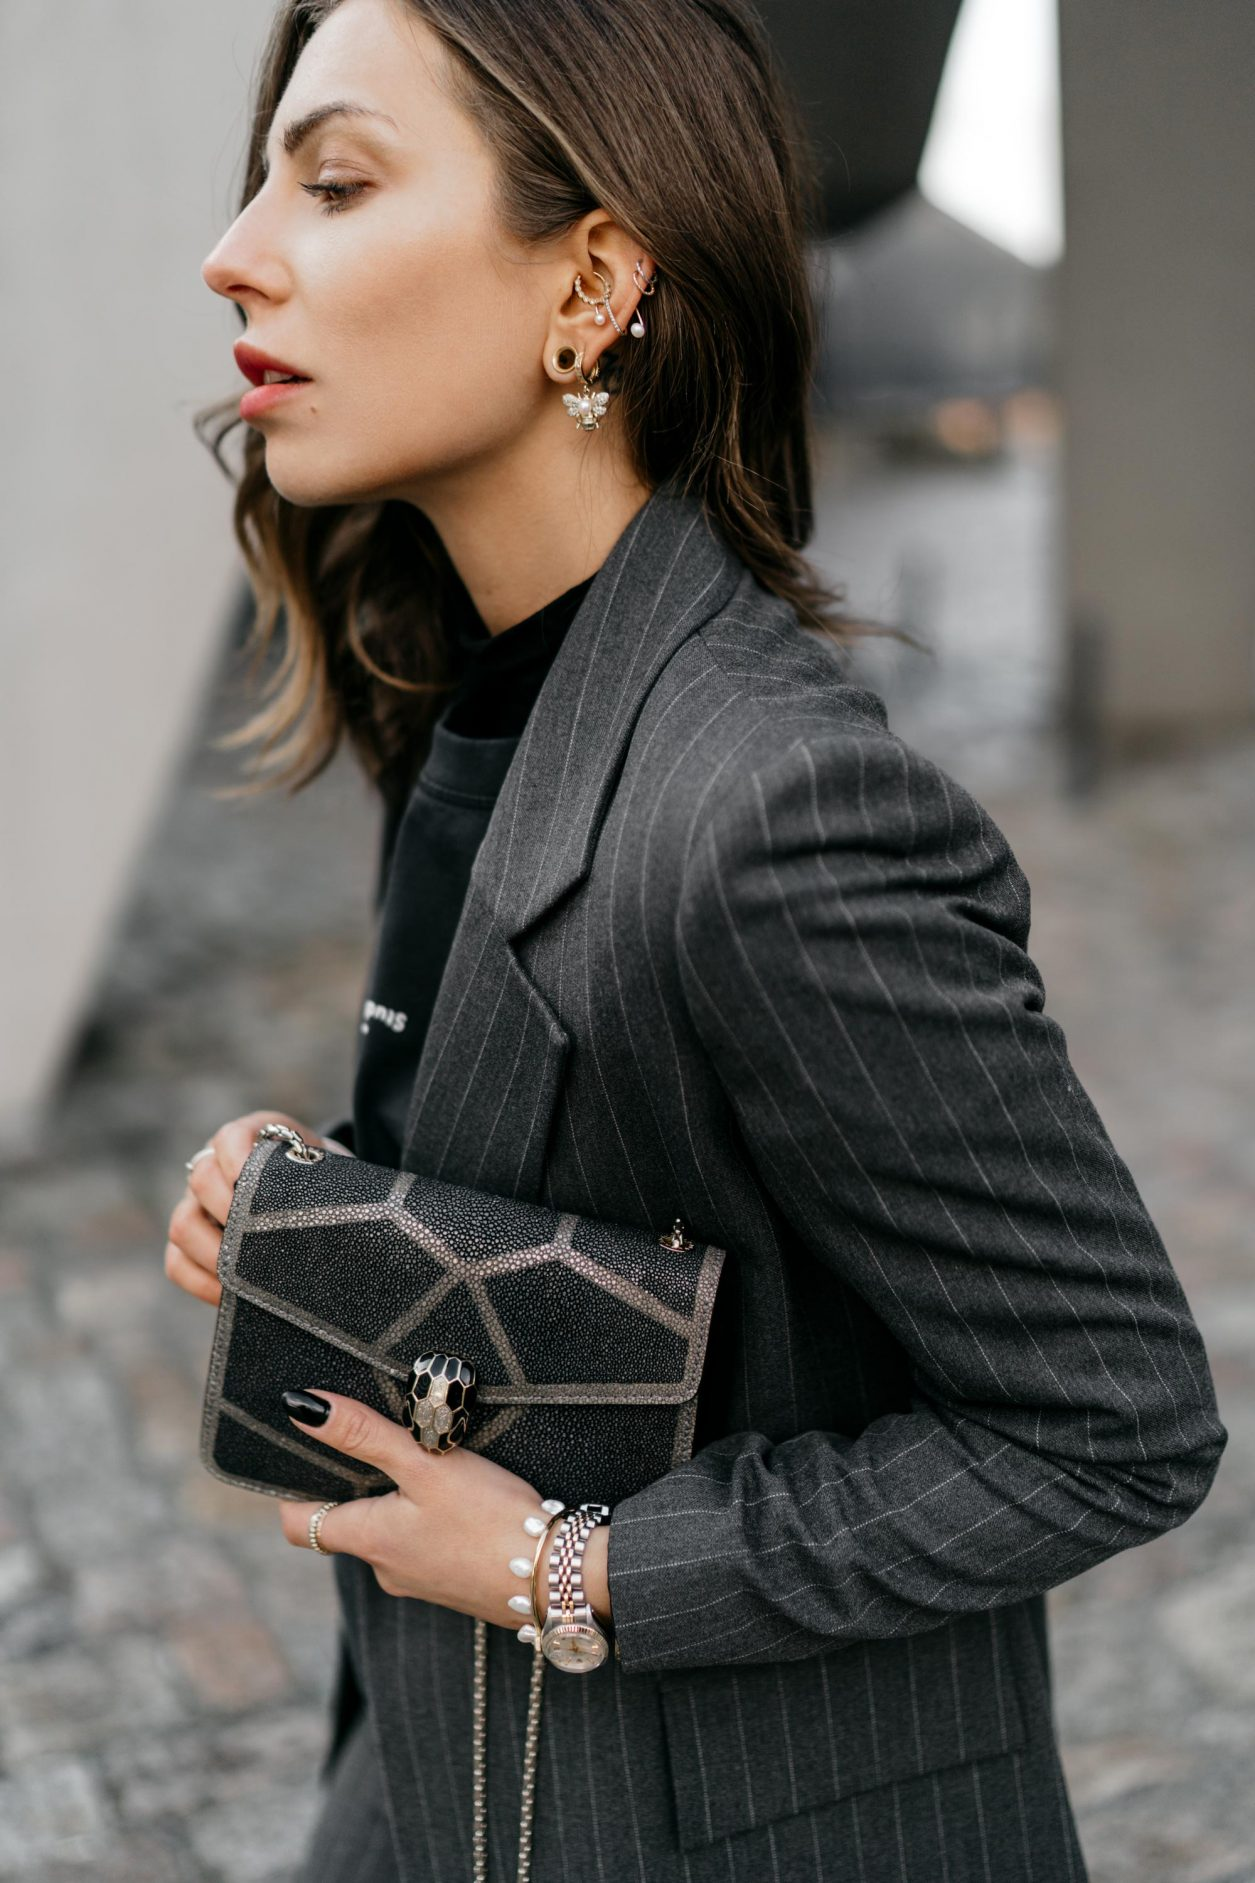 Streetstyle by Masha Sedgwick | Fashion blogger from Berlin | Everyday business outfit ideas, business chic, high end, tomboy style | Wearing grey checked Mango suit, dark grey vintage Celine coat, basic logo tee by Acne Studios